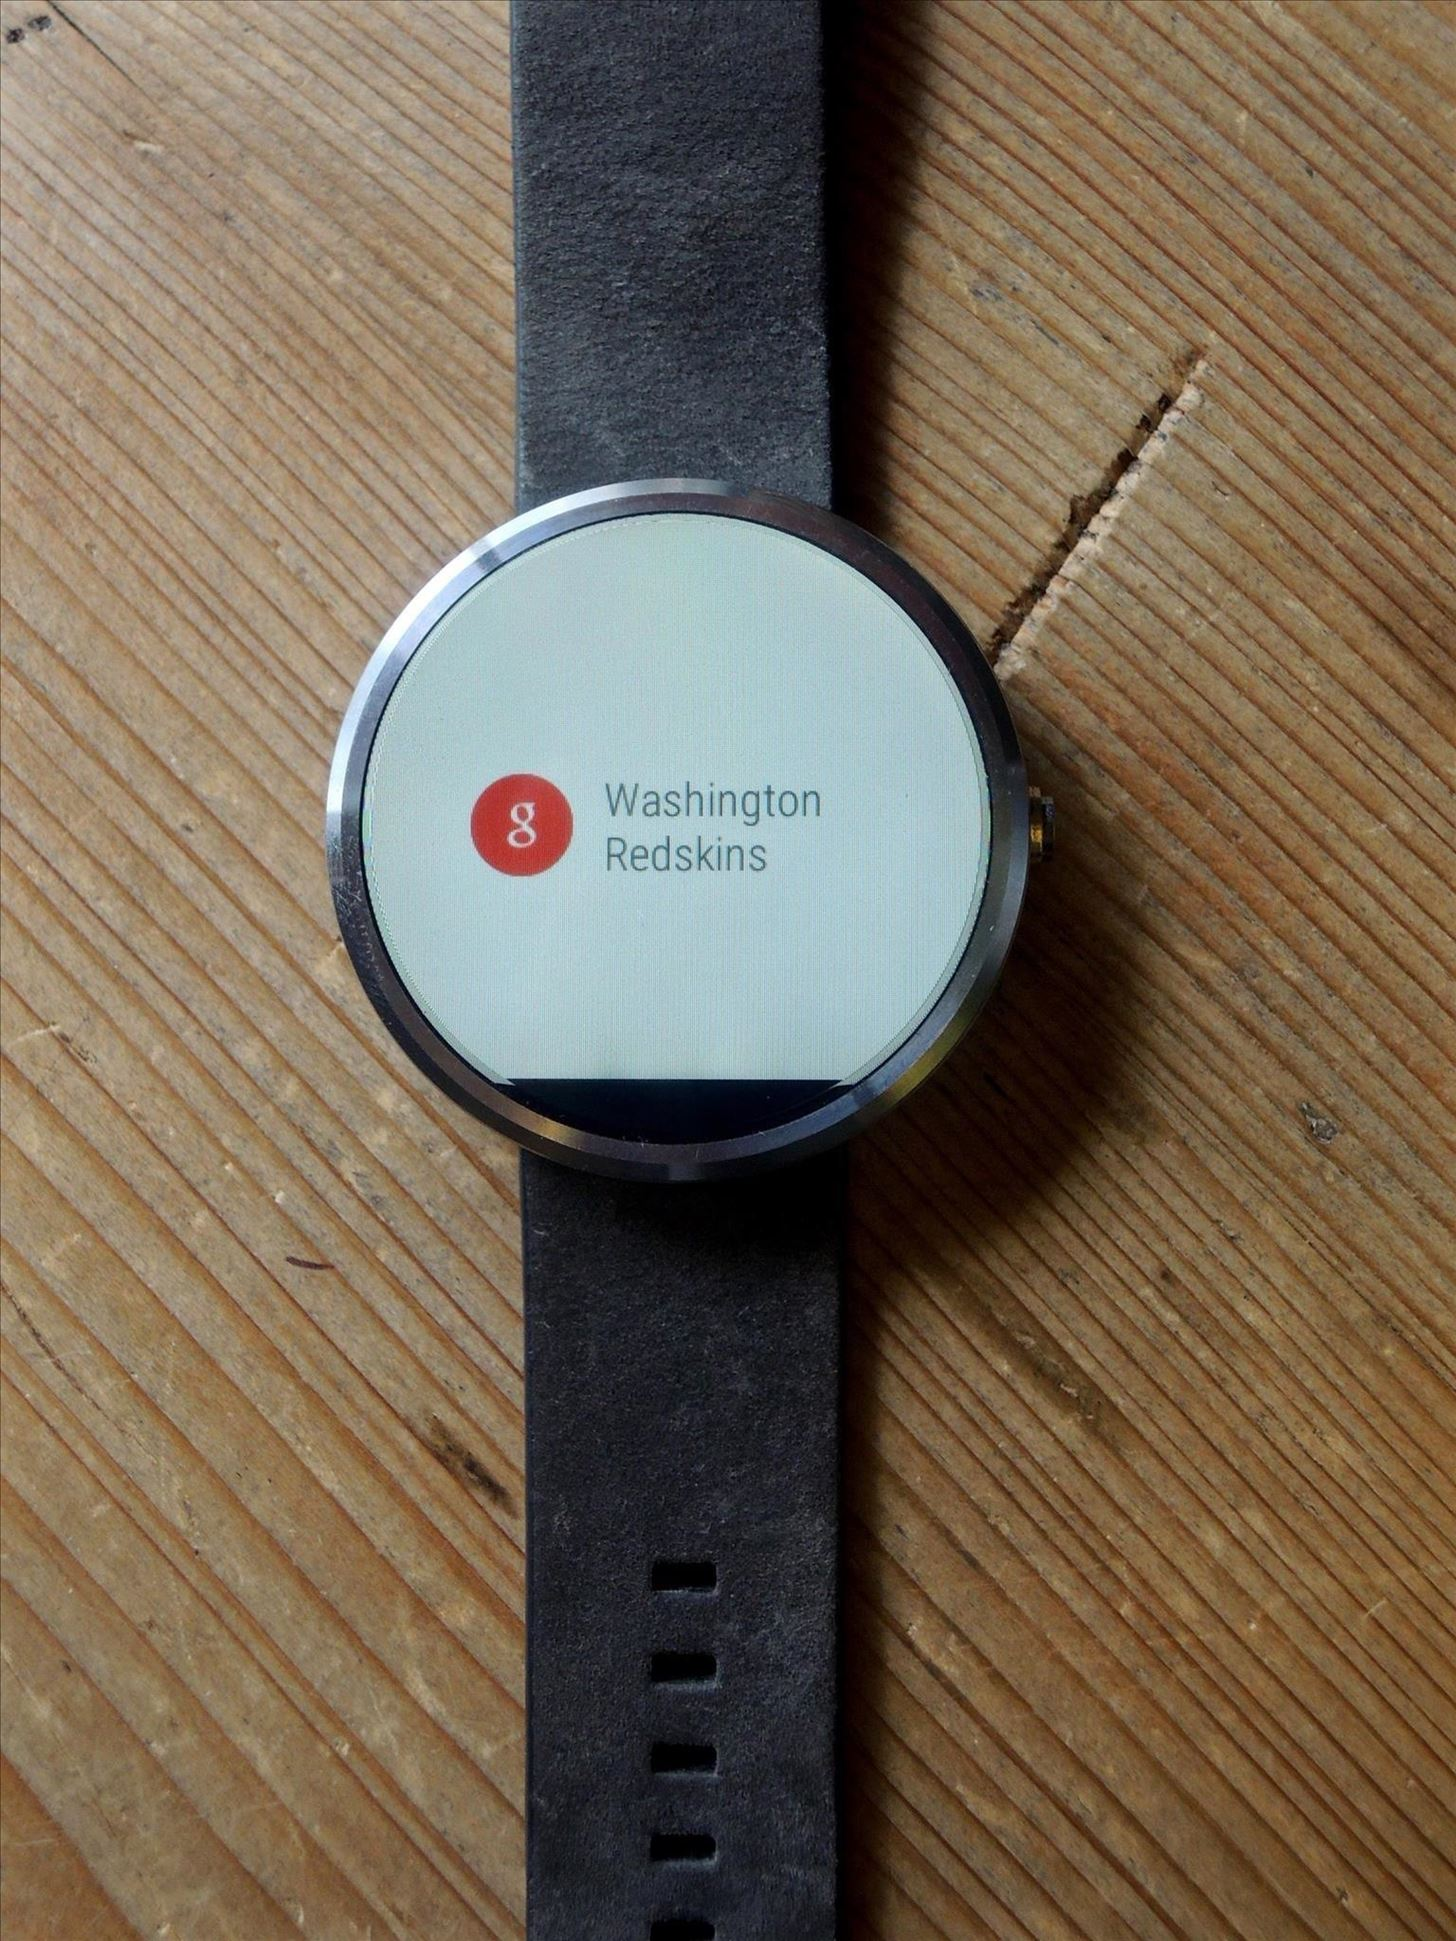 How to Set Up & Use an Android Wear Smartwatch on Your iPhone